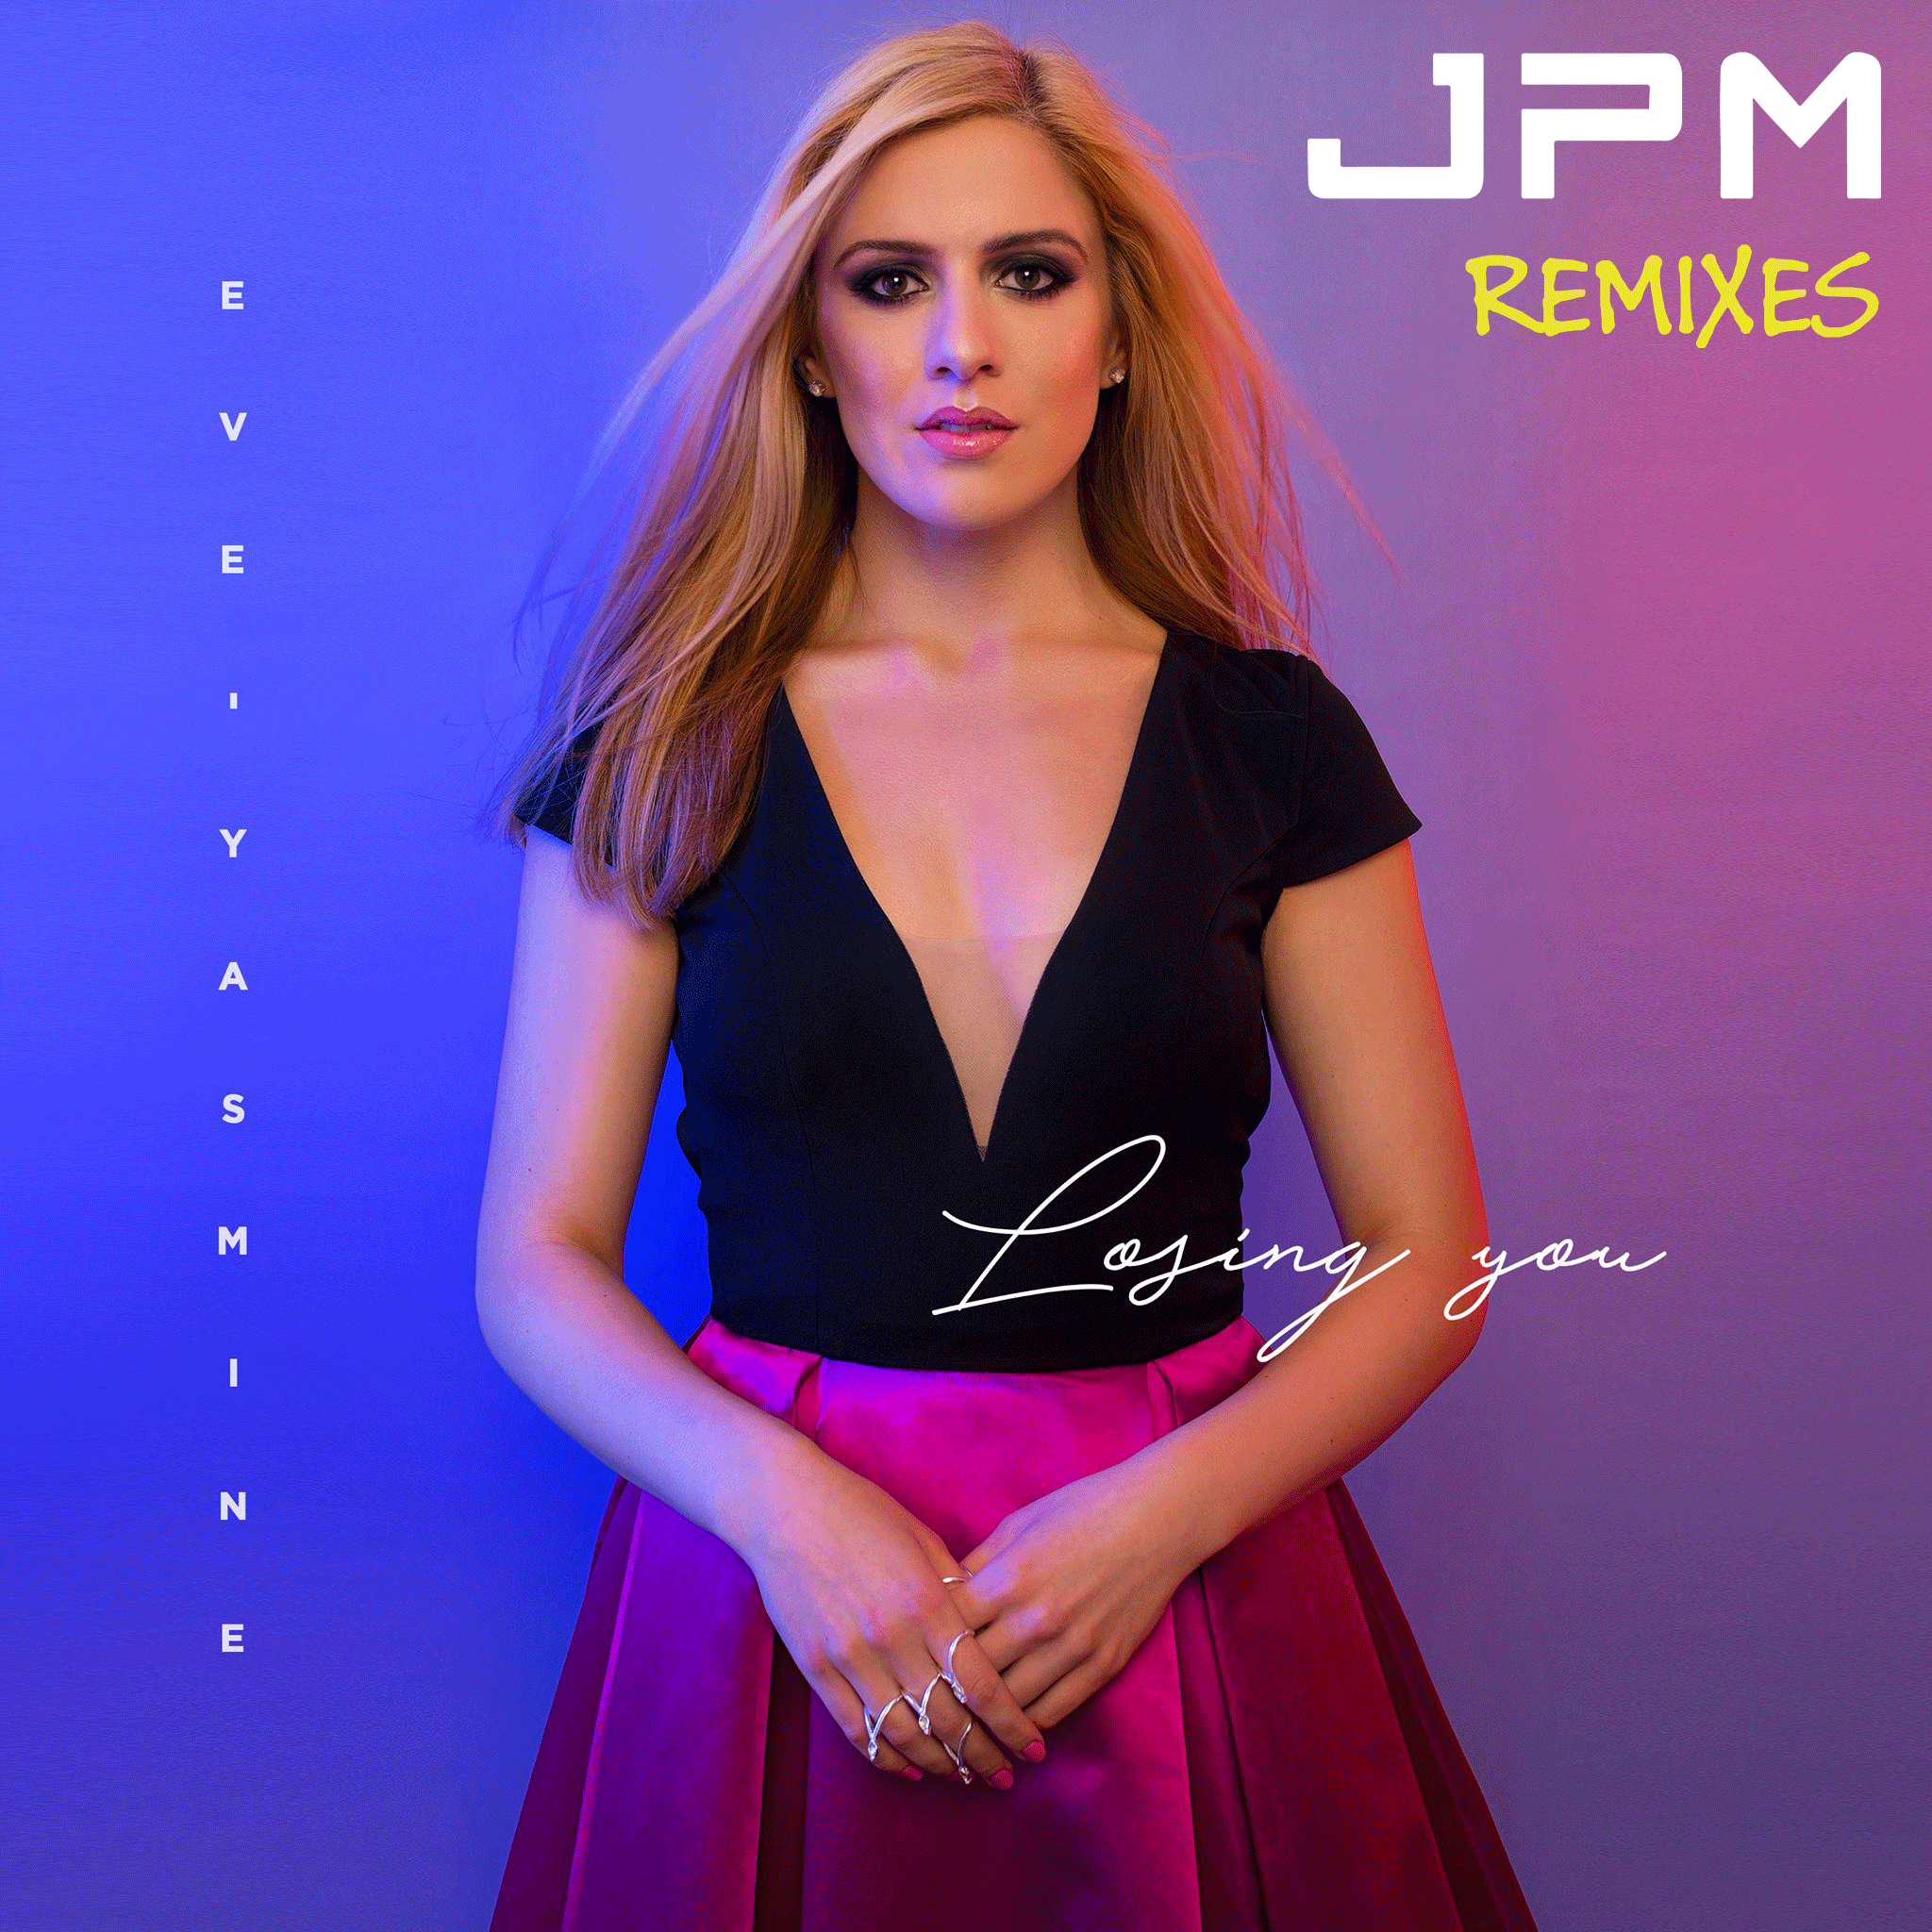 Eve-Yasmine 'Losing You' JPM Remixes